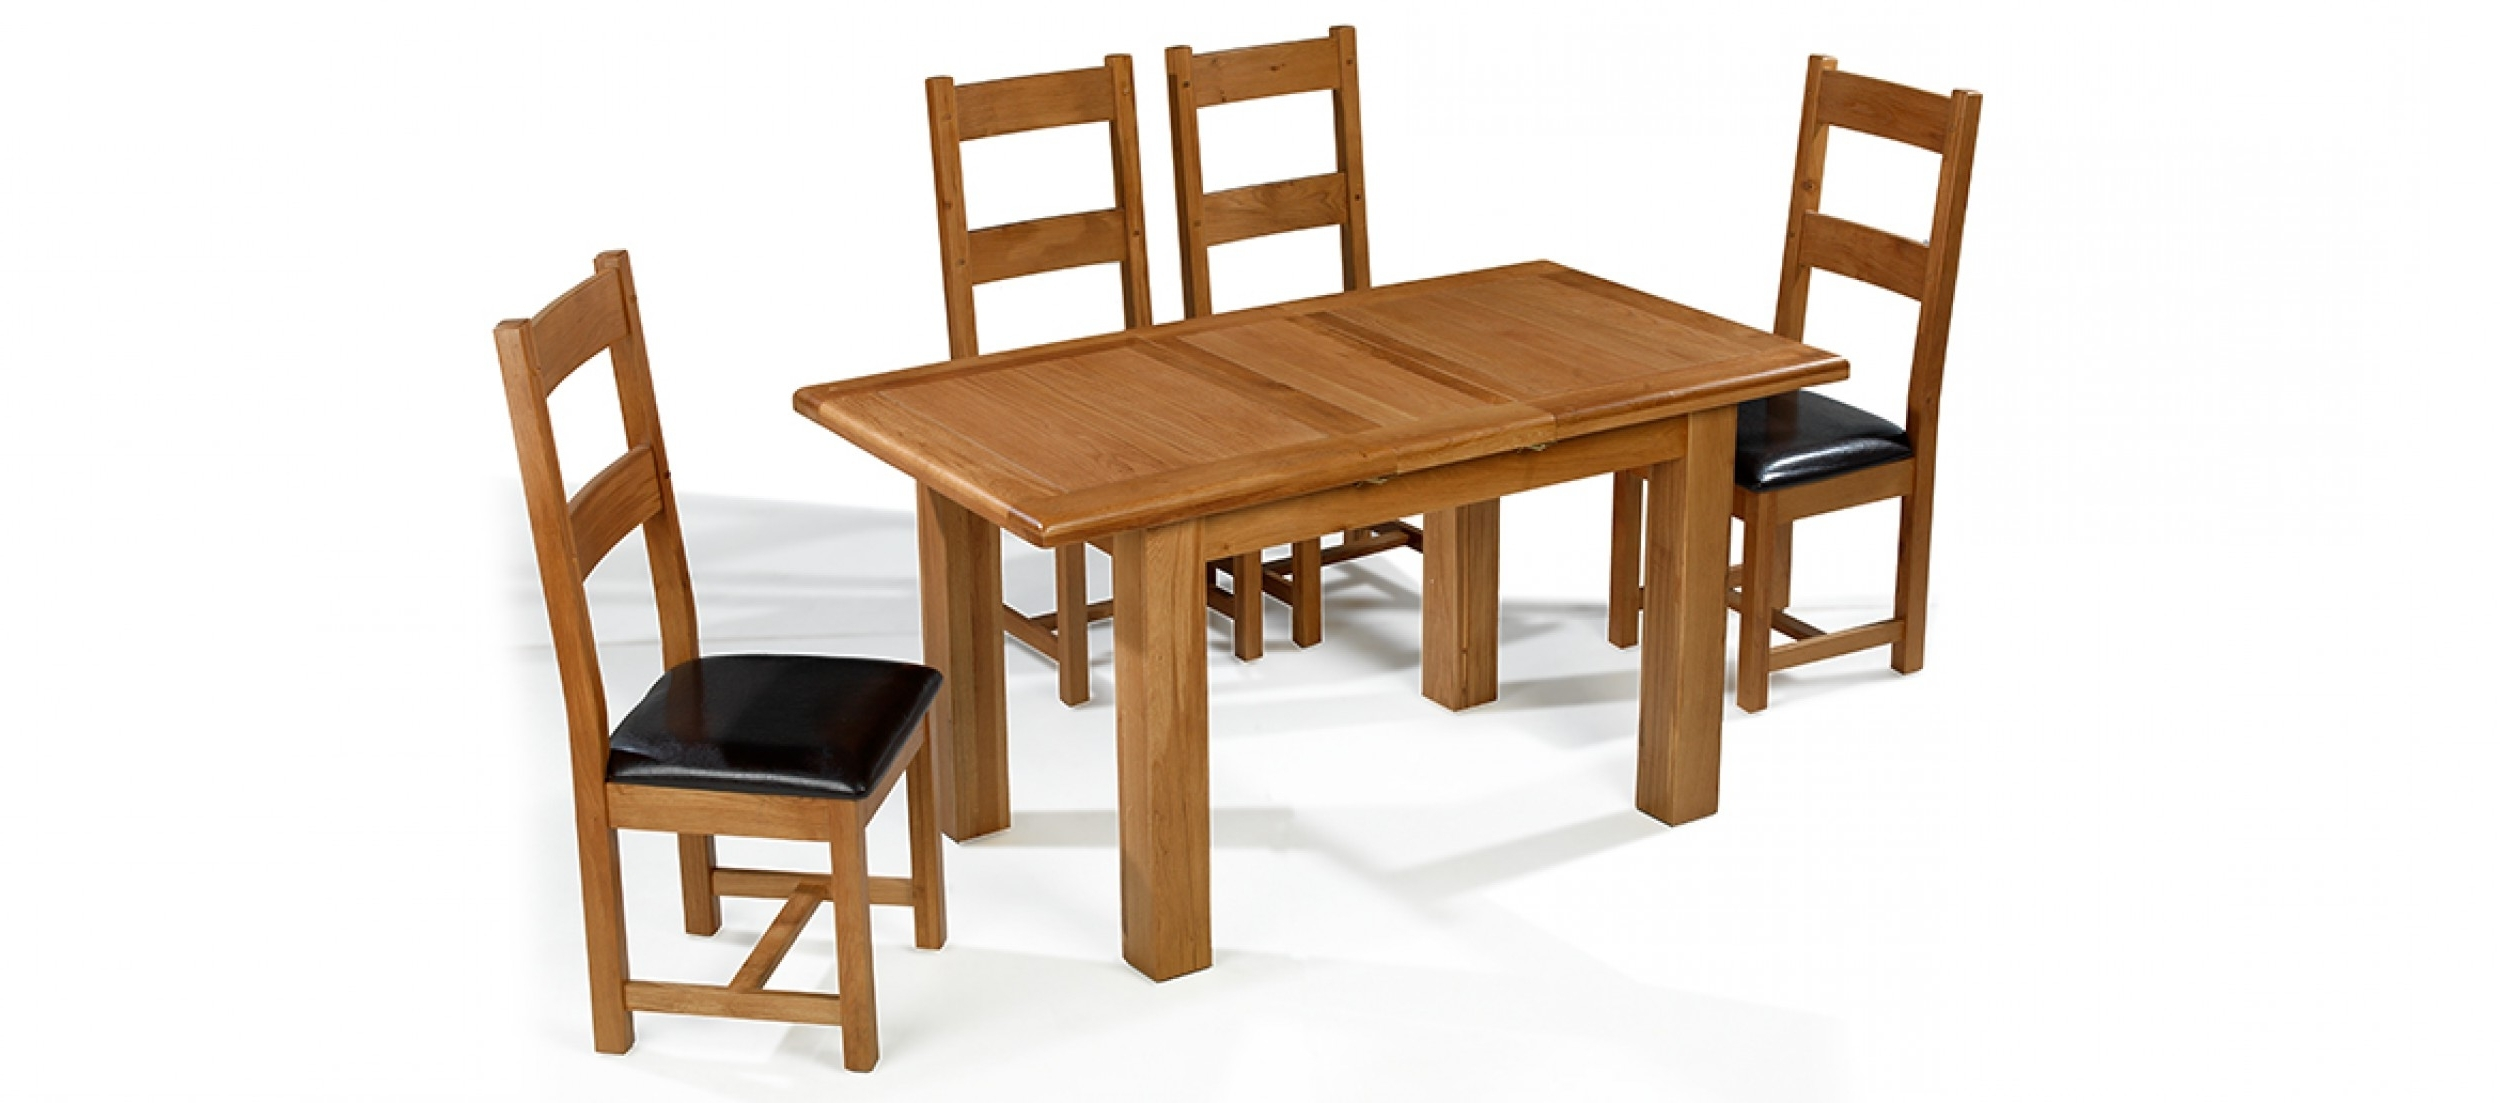 Popular Barham Oak 120 150 Cm Extending Dining Table And 4 Chairs (View 19 of 25)